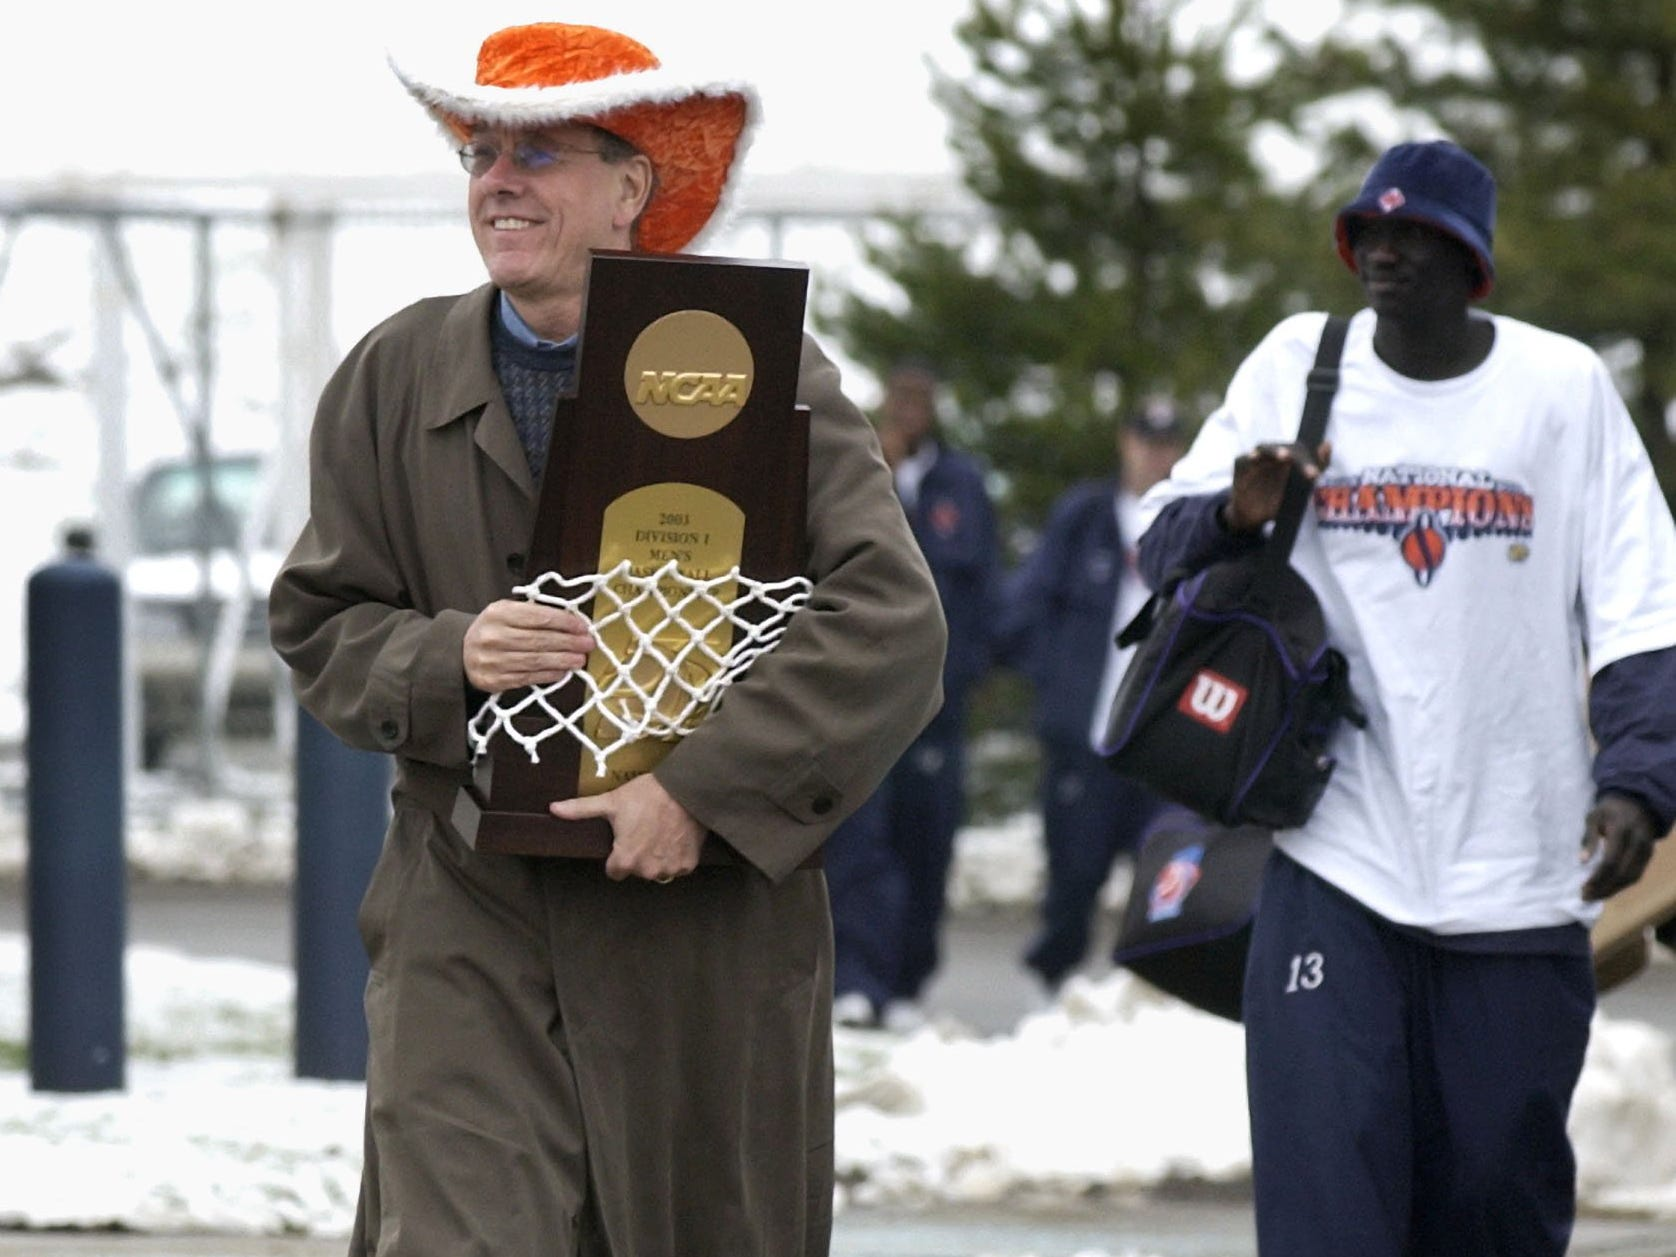 Syracuse coach Jim Boeheim leads his players while clutching the NCAA Championship trophy and net upon arriving in Syracuse on April 8, 2003. The Orangemen defeated Kansas for the national title Monday night. Senior Kueth Duany, rear, follows.